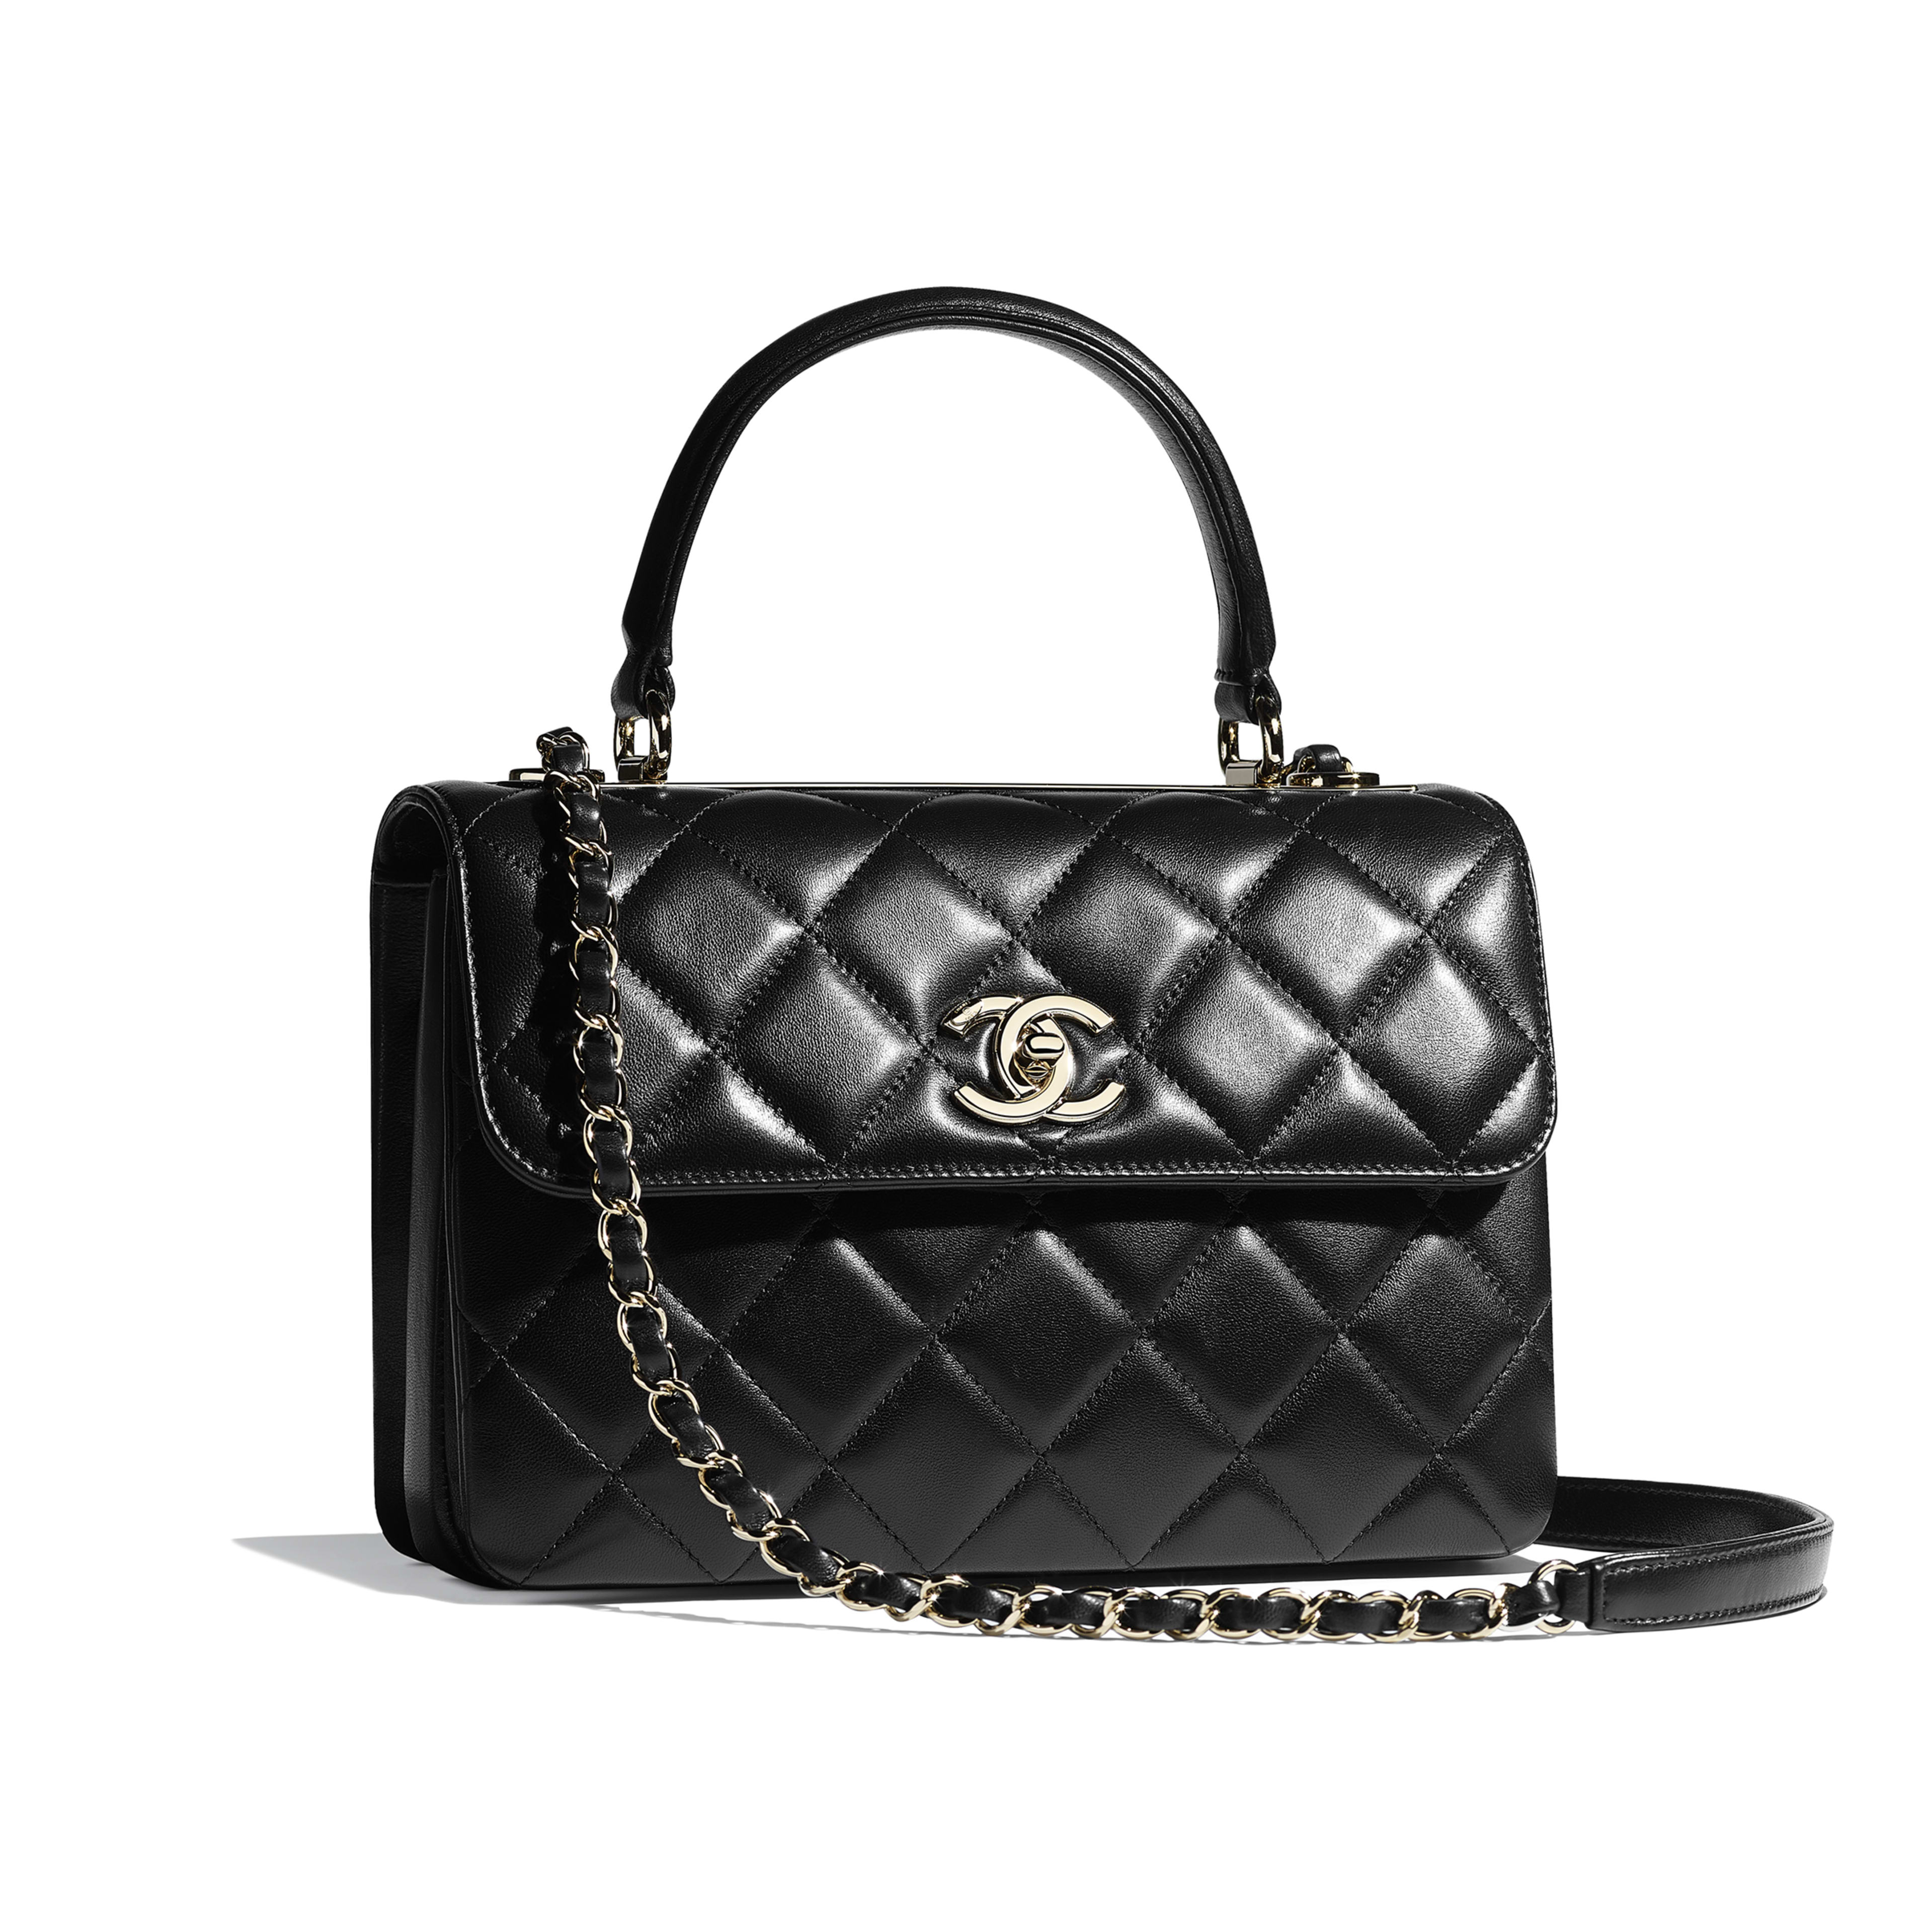 Small Flap Bag with Top Handle - Black - Lambskin & Gold-Tone Metal - Other view - see full sized version